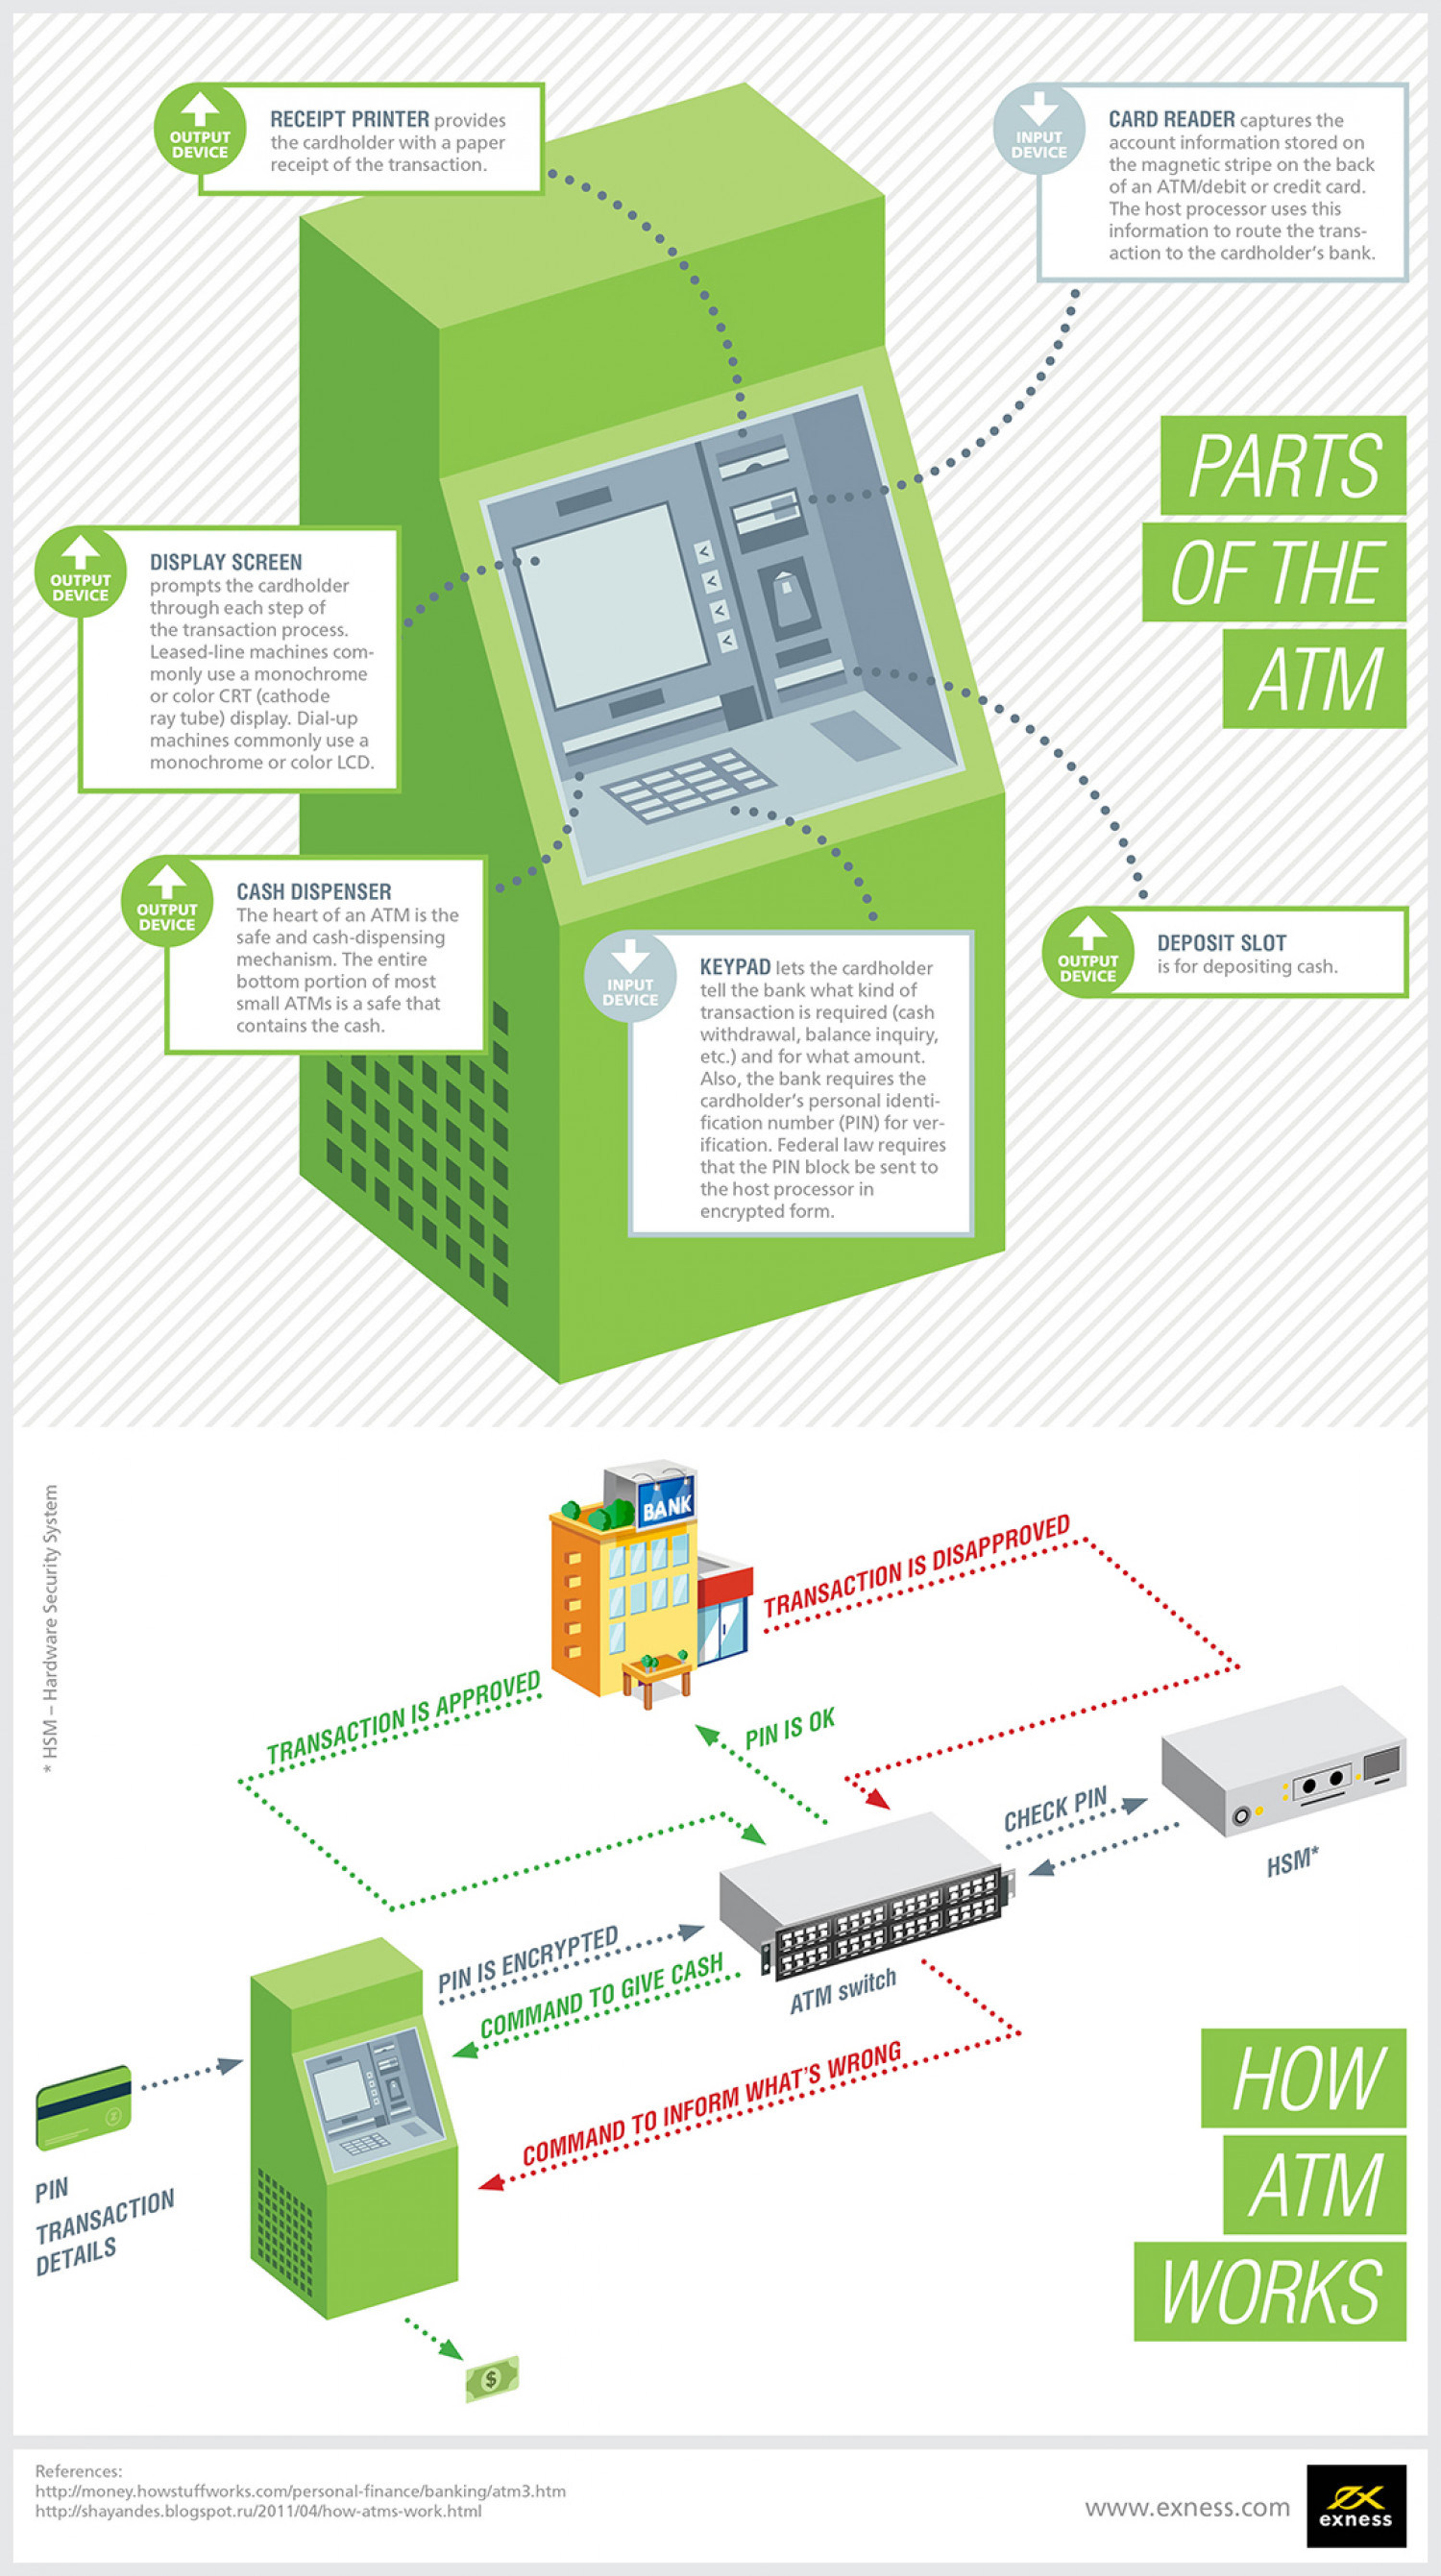 ATM. How it works. Infographic